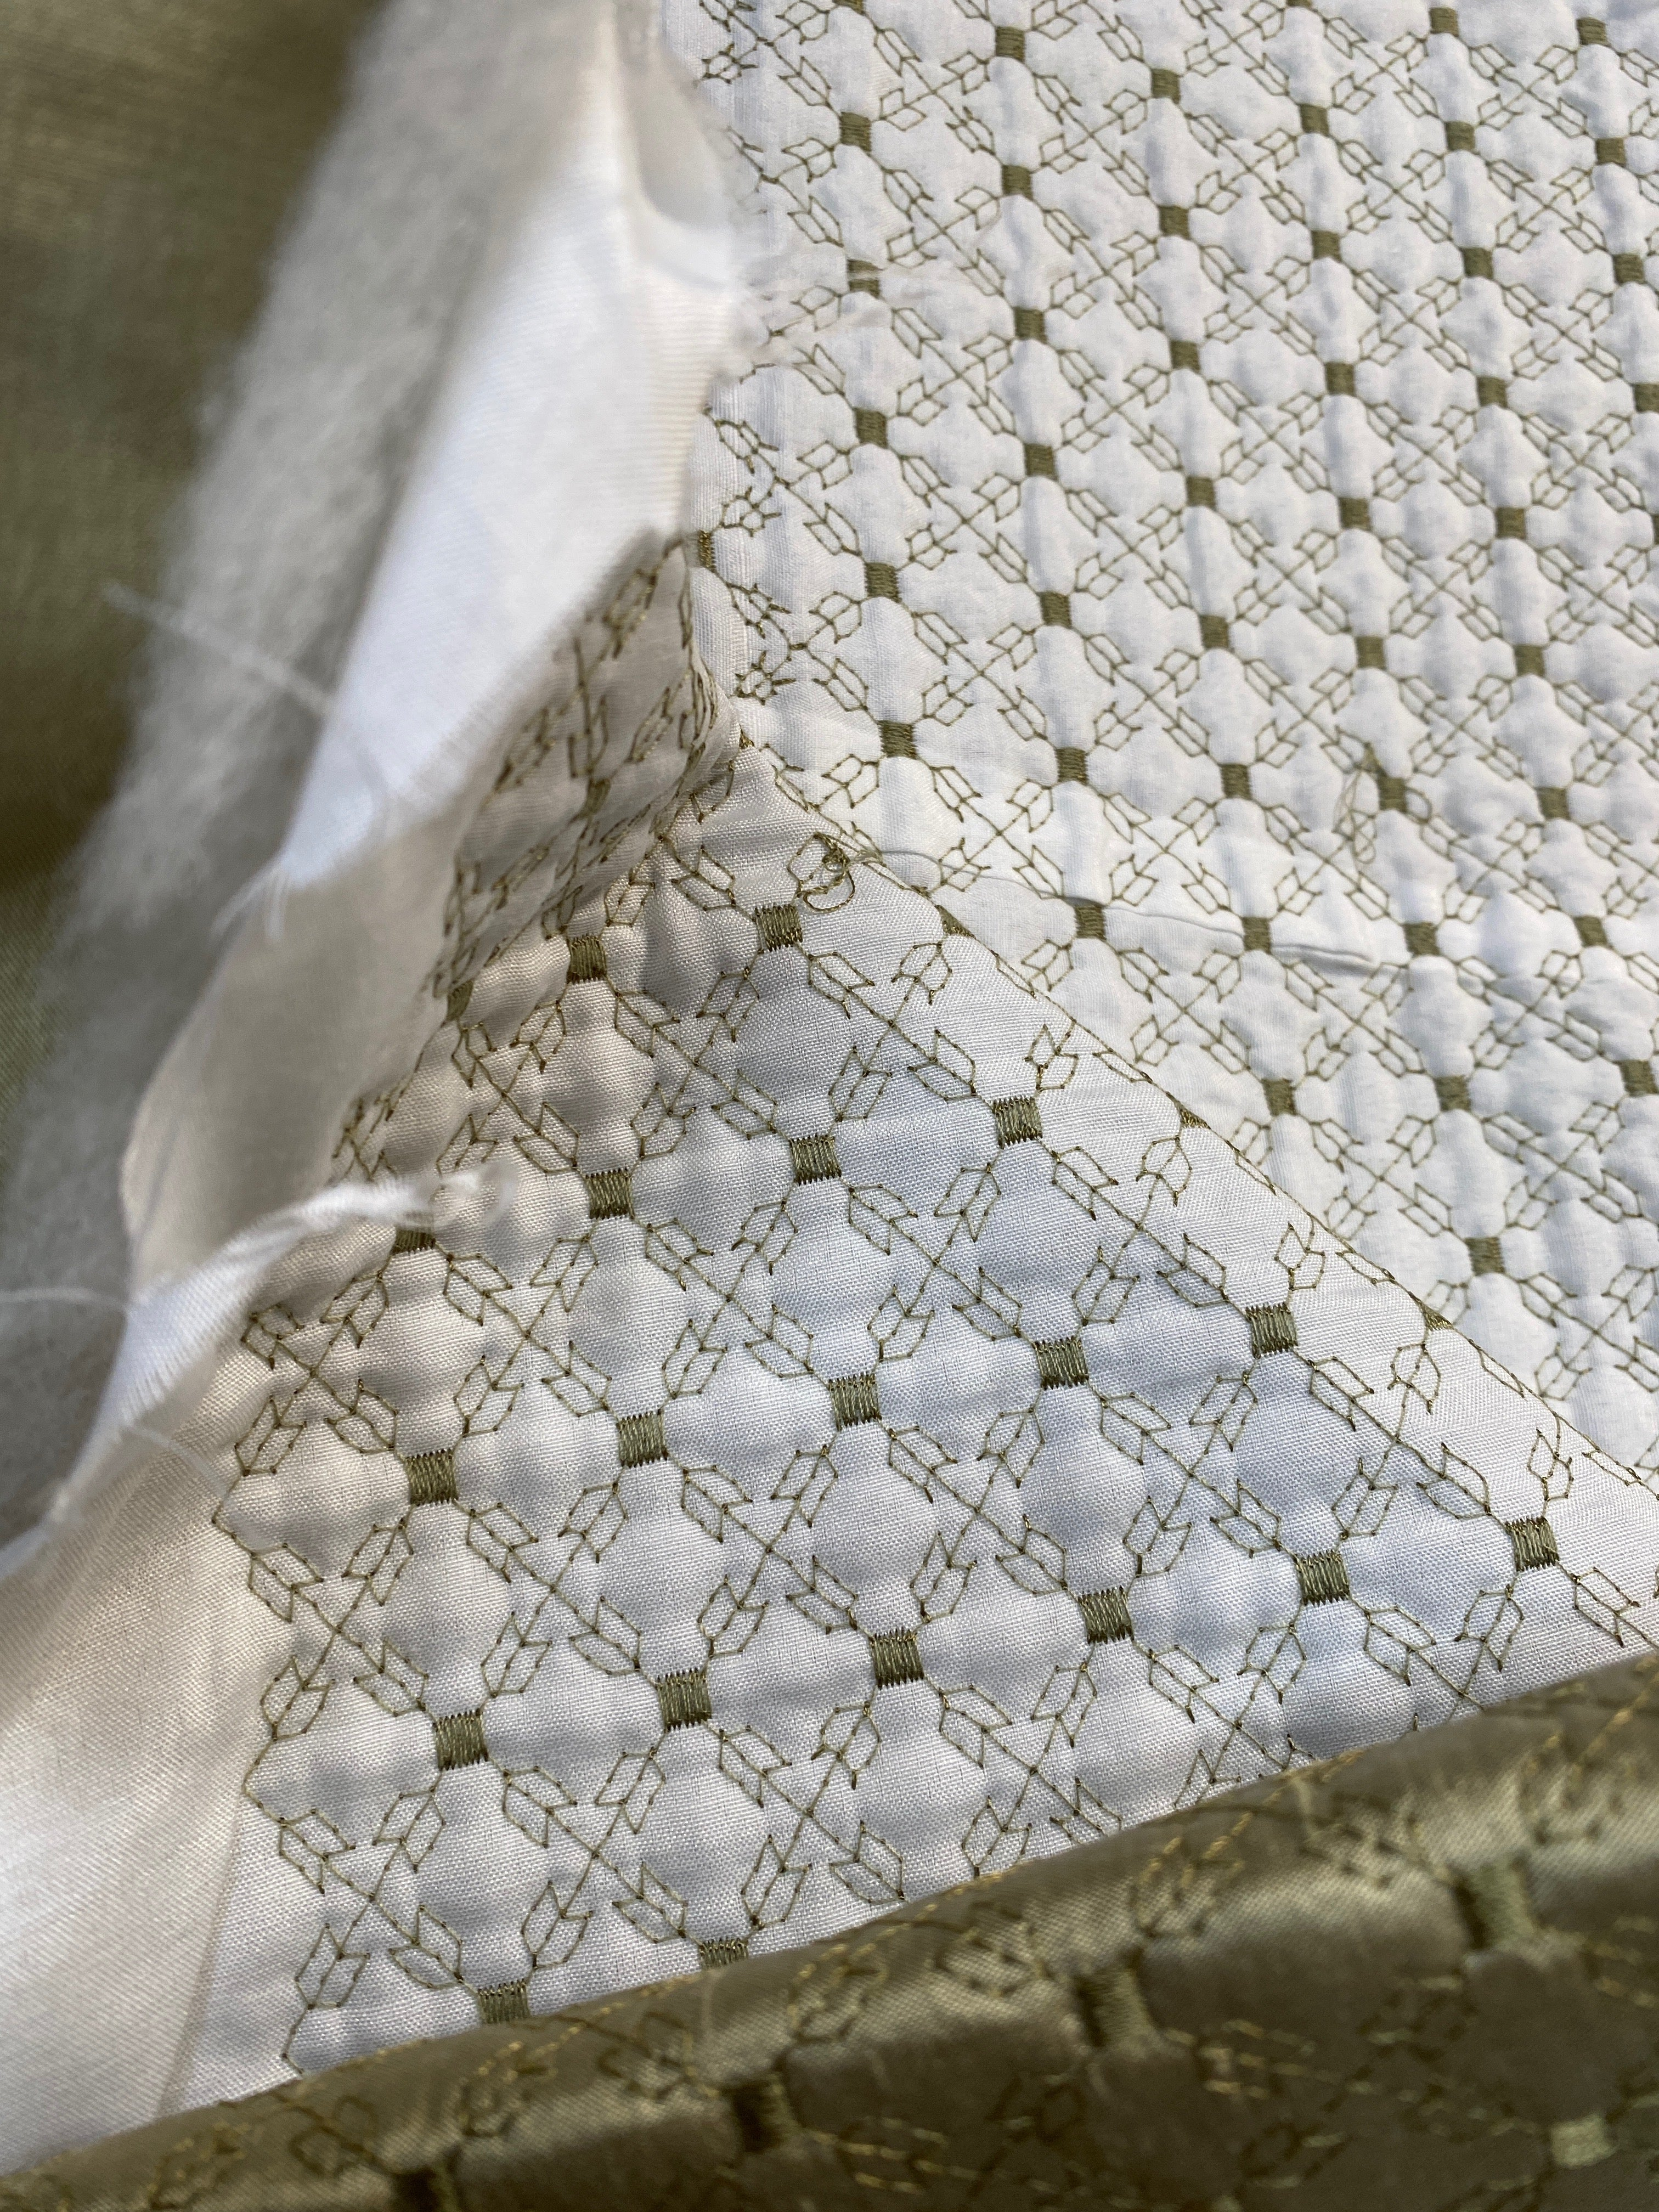 NEW Princess Amy 100% Silk Taffeta Quilted Petticoat Fabric with Cotton Batting in Dusty Pistachio Green